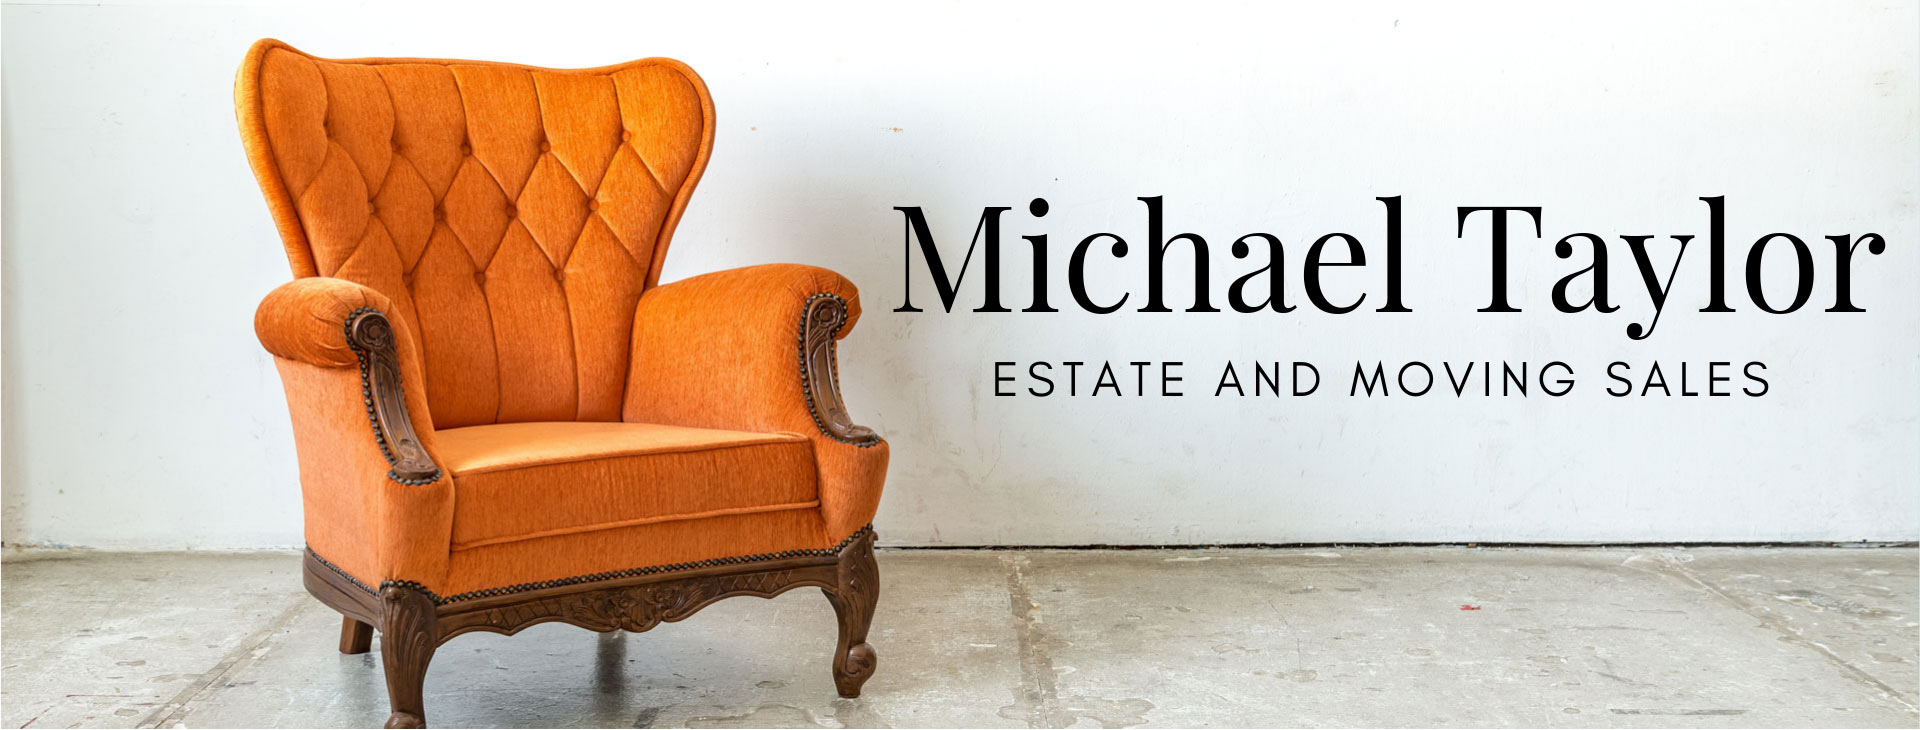 Orange wingback vintage armchair with a link to Michael Taylor Estate and Moving Sales' Calendar